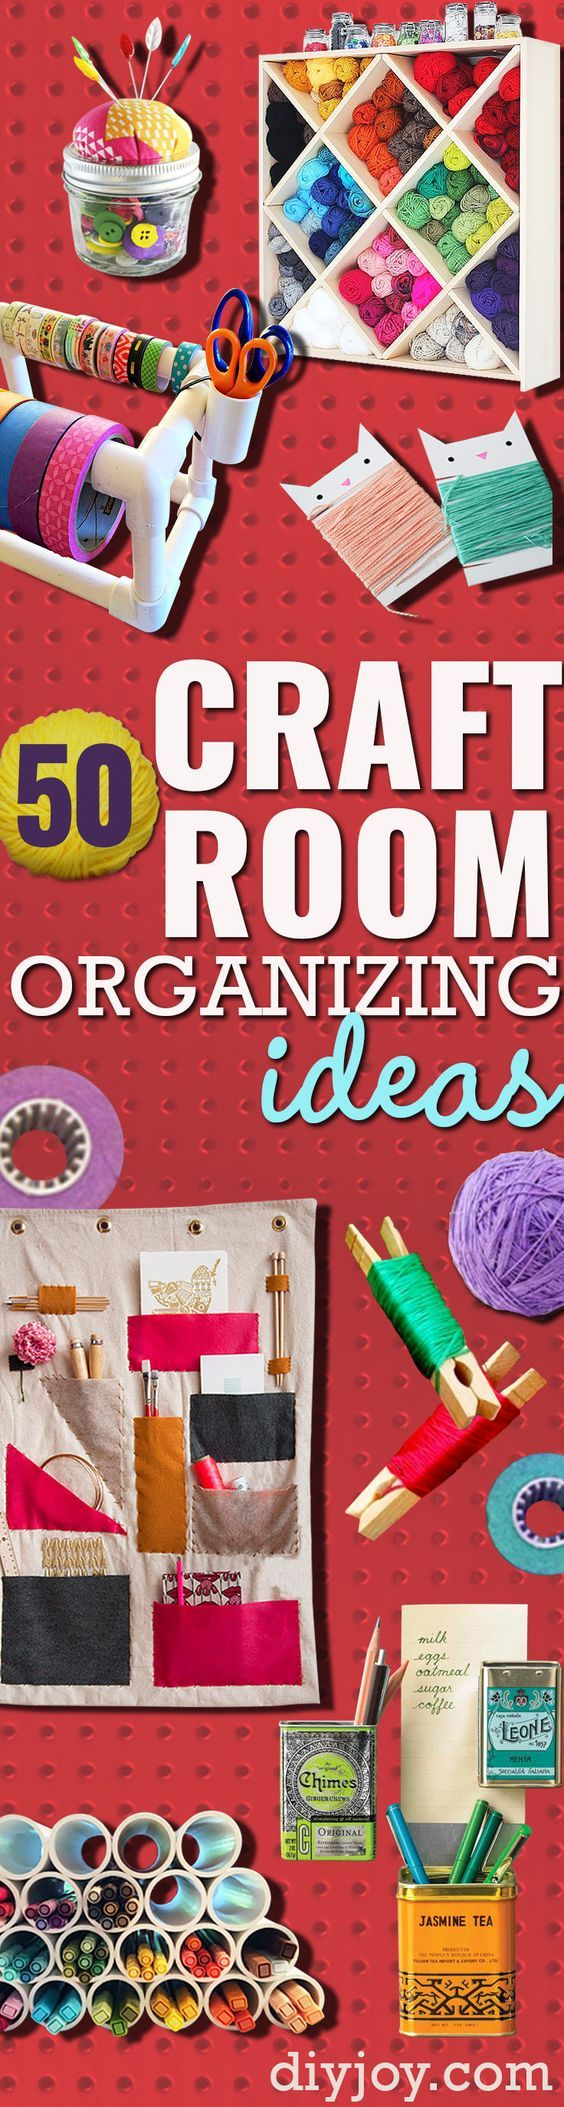 DIY Craft Room Ideas and Craft Room Organization Projects -- Cool Ideas for Do It Yourself Craft Storage - fabric, paper, pens, creative tools, crafts supplies and sewing notions | http://diyjoy.com/craft-room-organization: